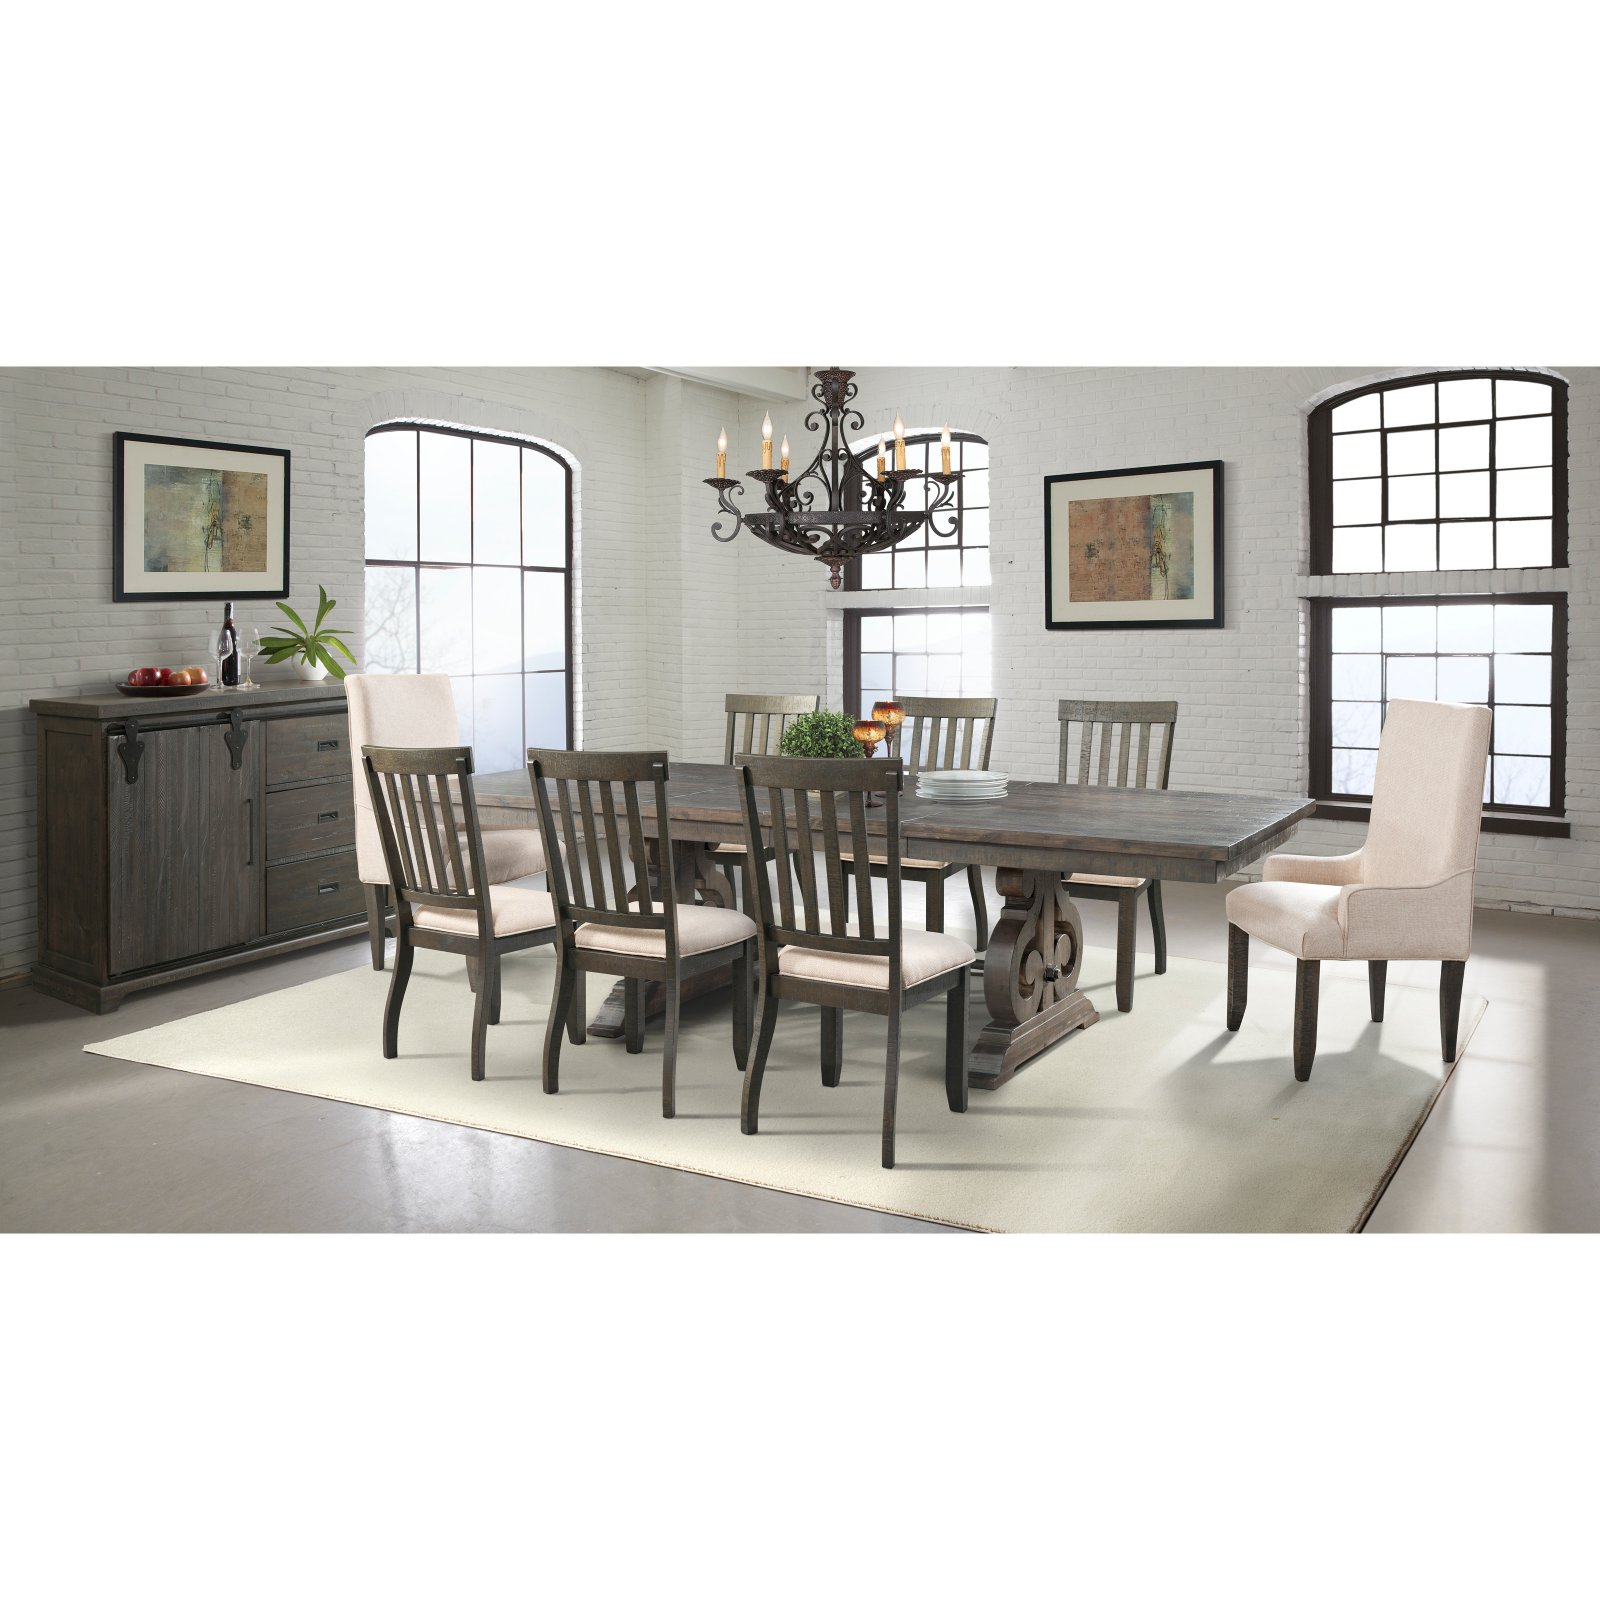 Picket House Stanford 9 Piece Dining Table Set with Server  sc 1 st  Walmart.com & Picket House Stanford 9 Piece Dining Table Set with Server - Walmart.com